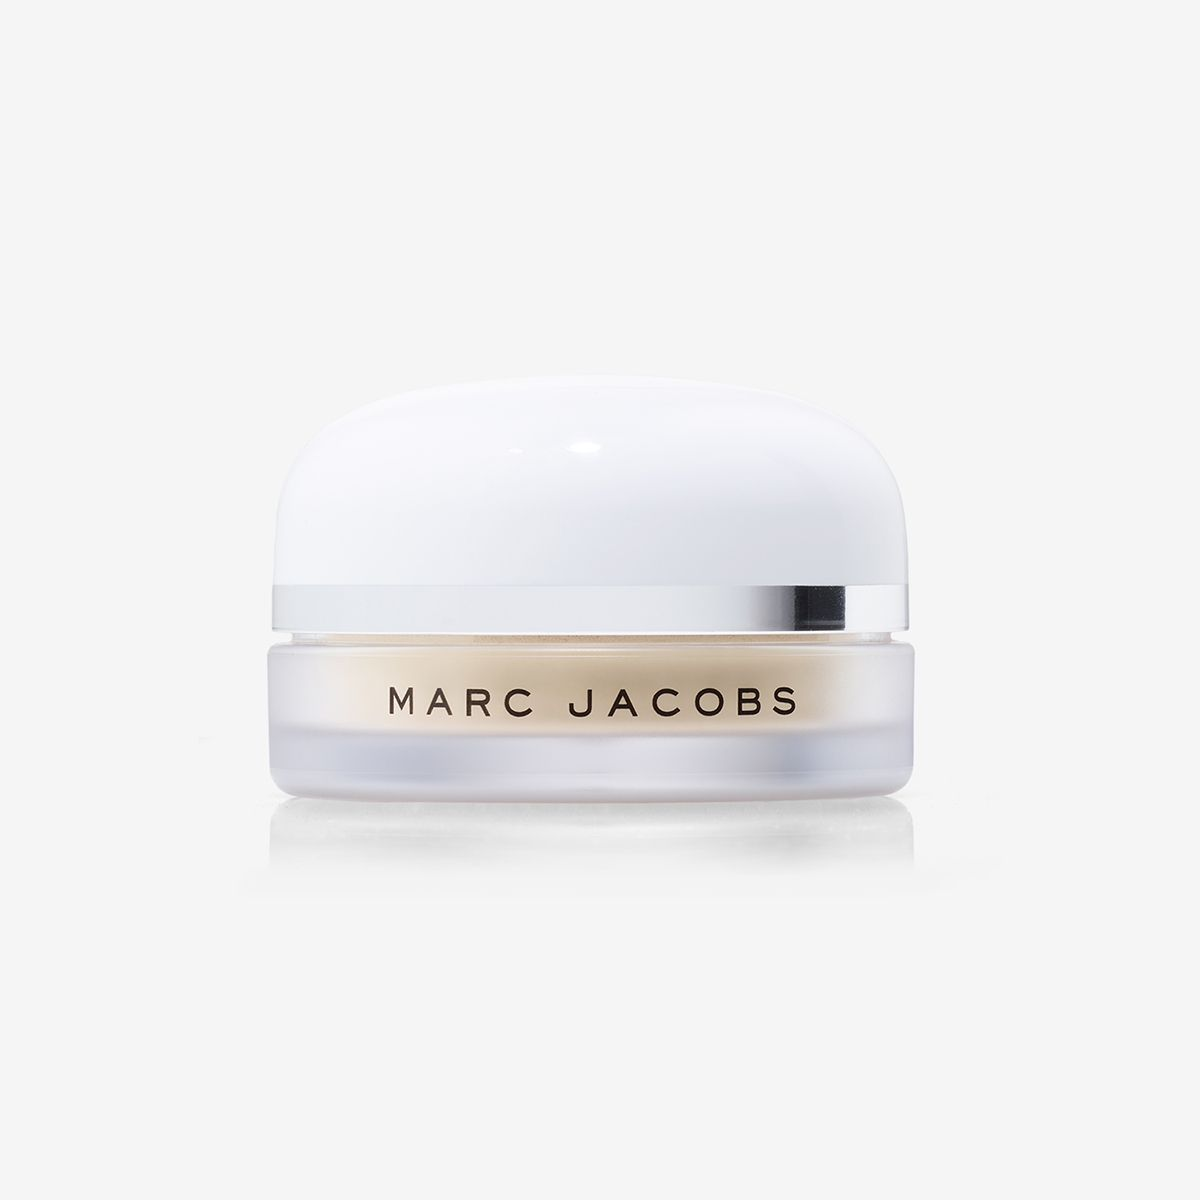 We Tested All The On-Sale Marc Jacobs Beauty Products—These Were the Standouts 5